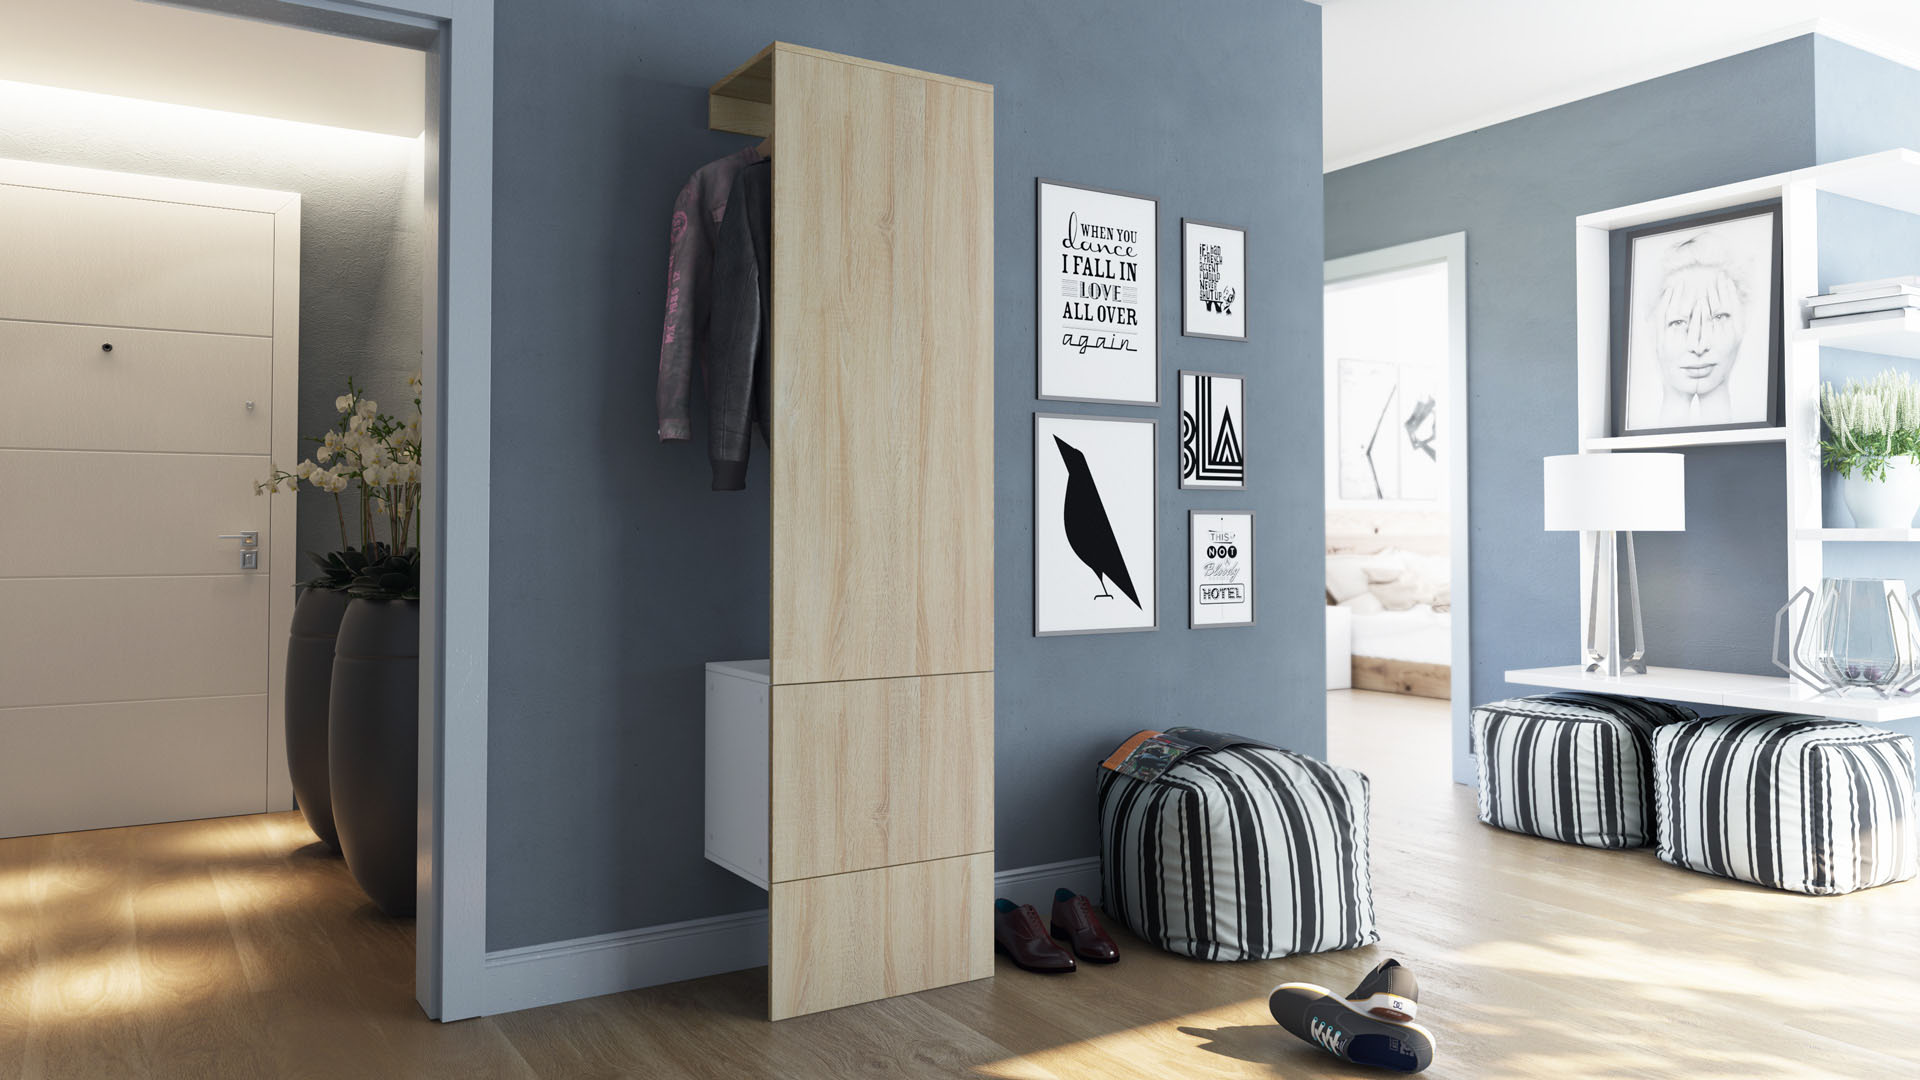 garderobenset flur garderobe diele carlton set 5 in wei hochglanz naturt ne ebay. Black Bedroom Furniture Sets. Home Design Ideas